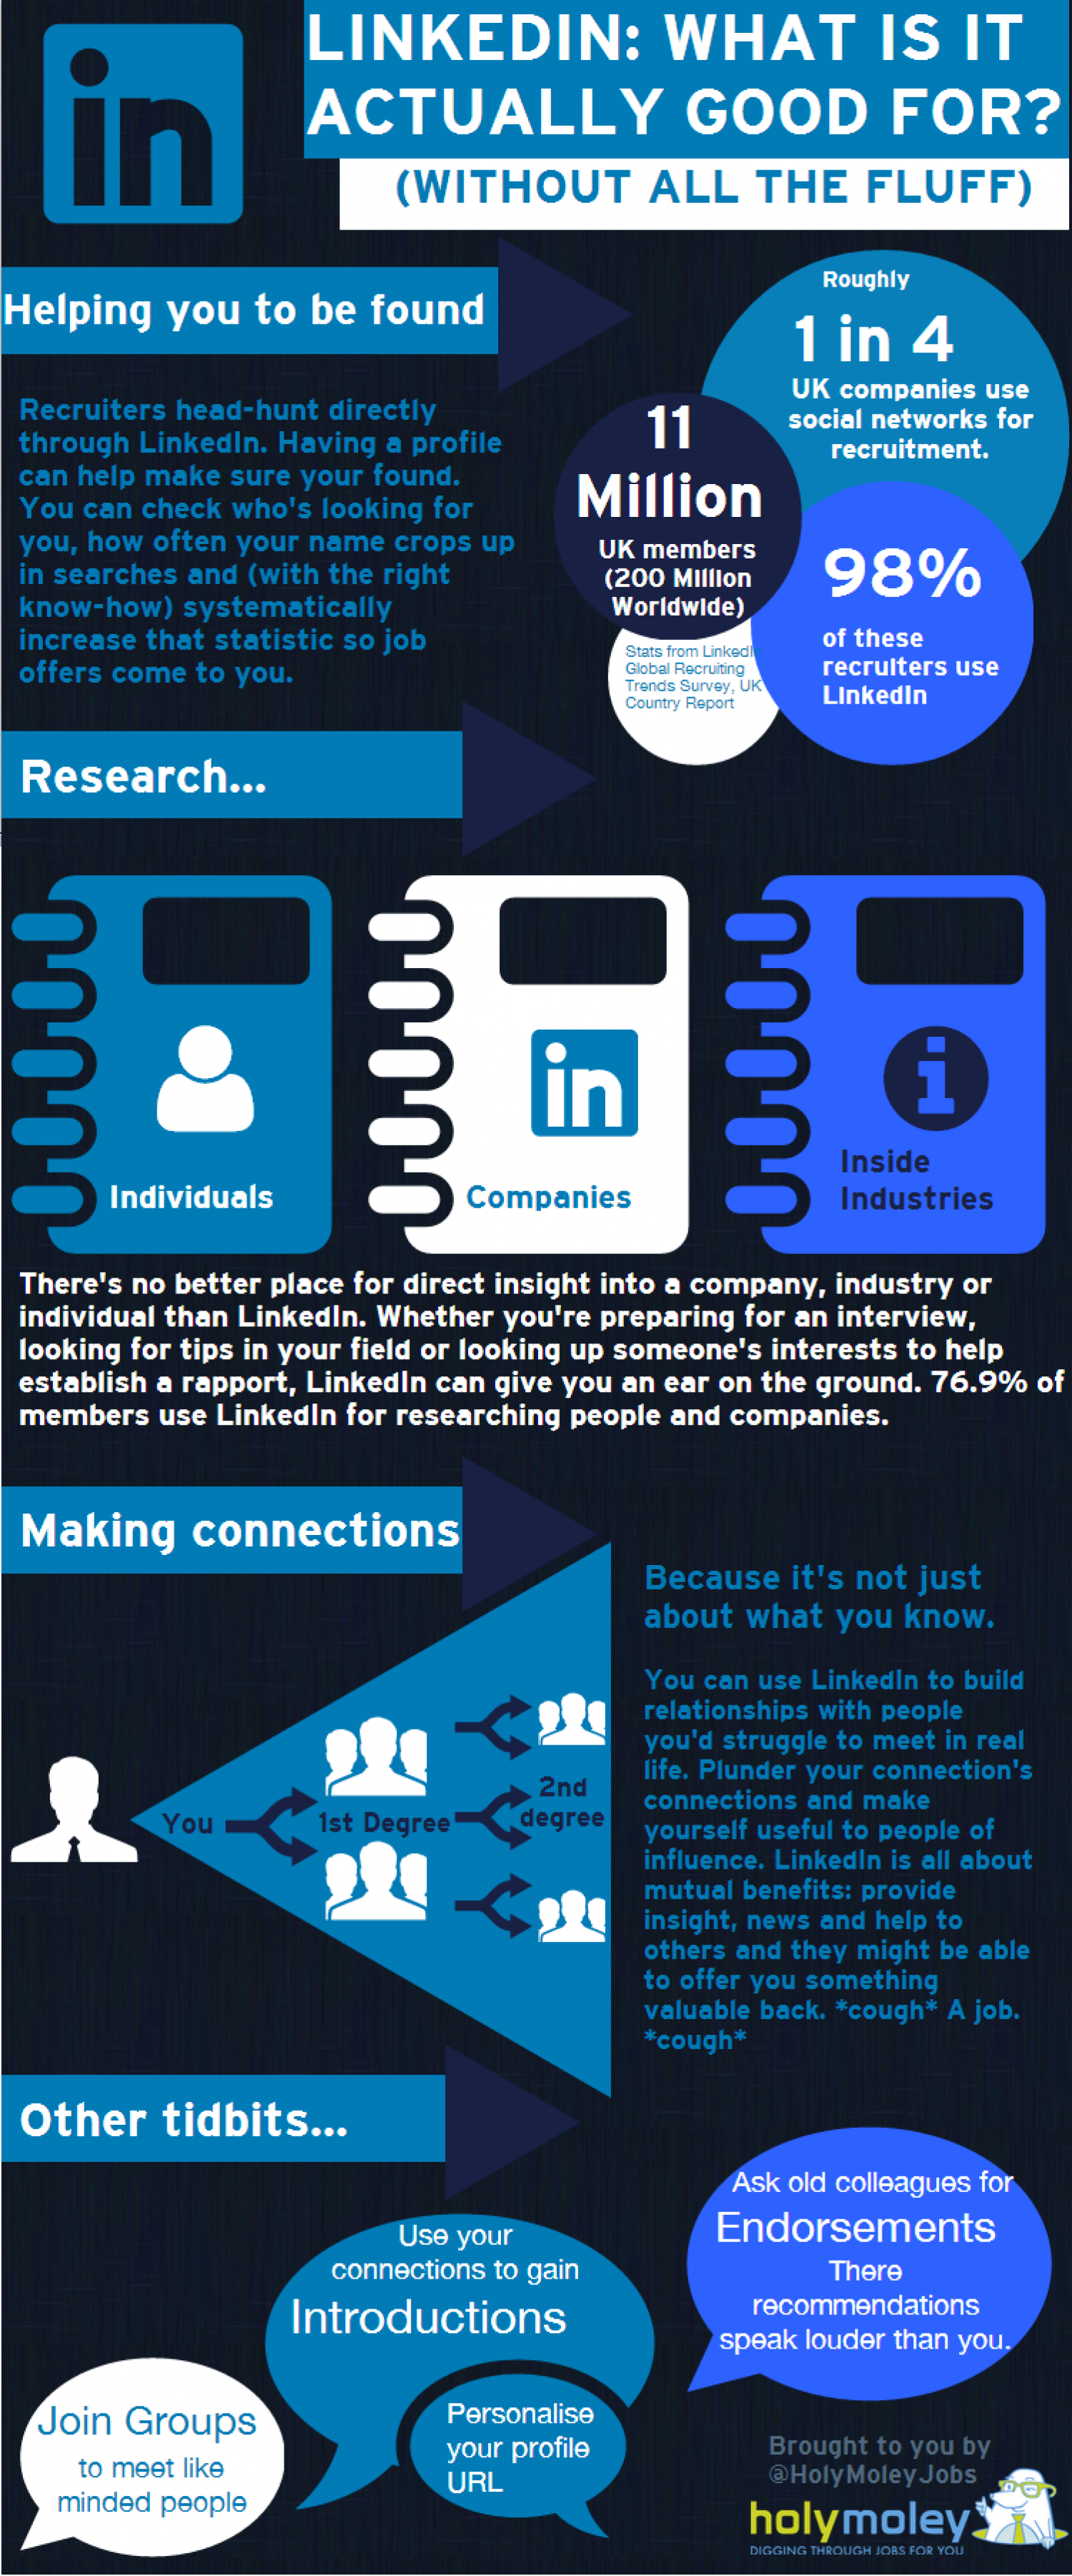 LinkedIn: What's it actually good for? Infographic